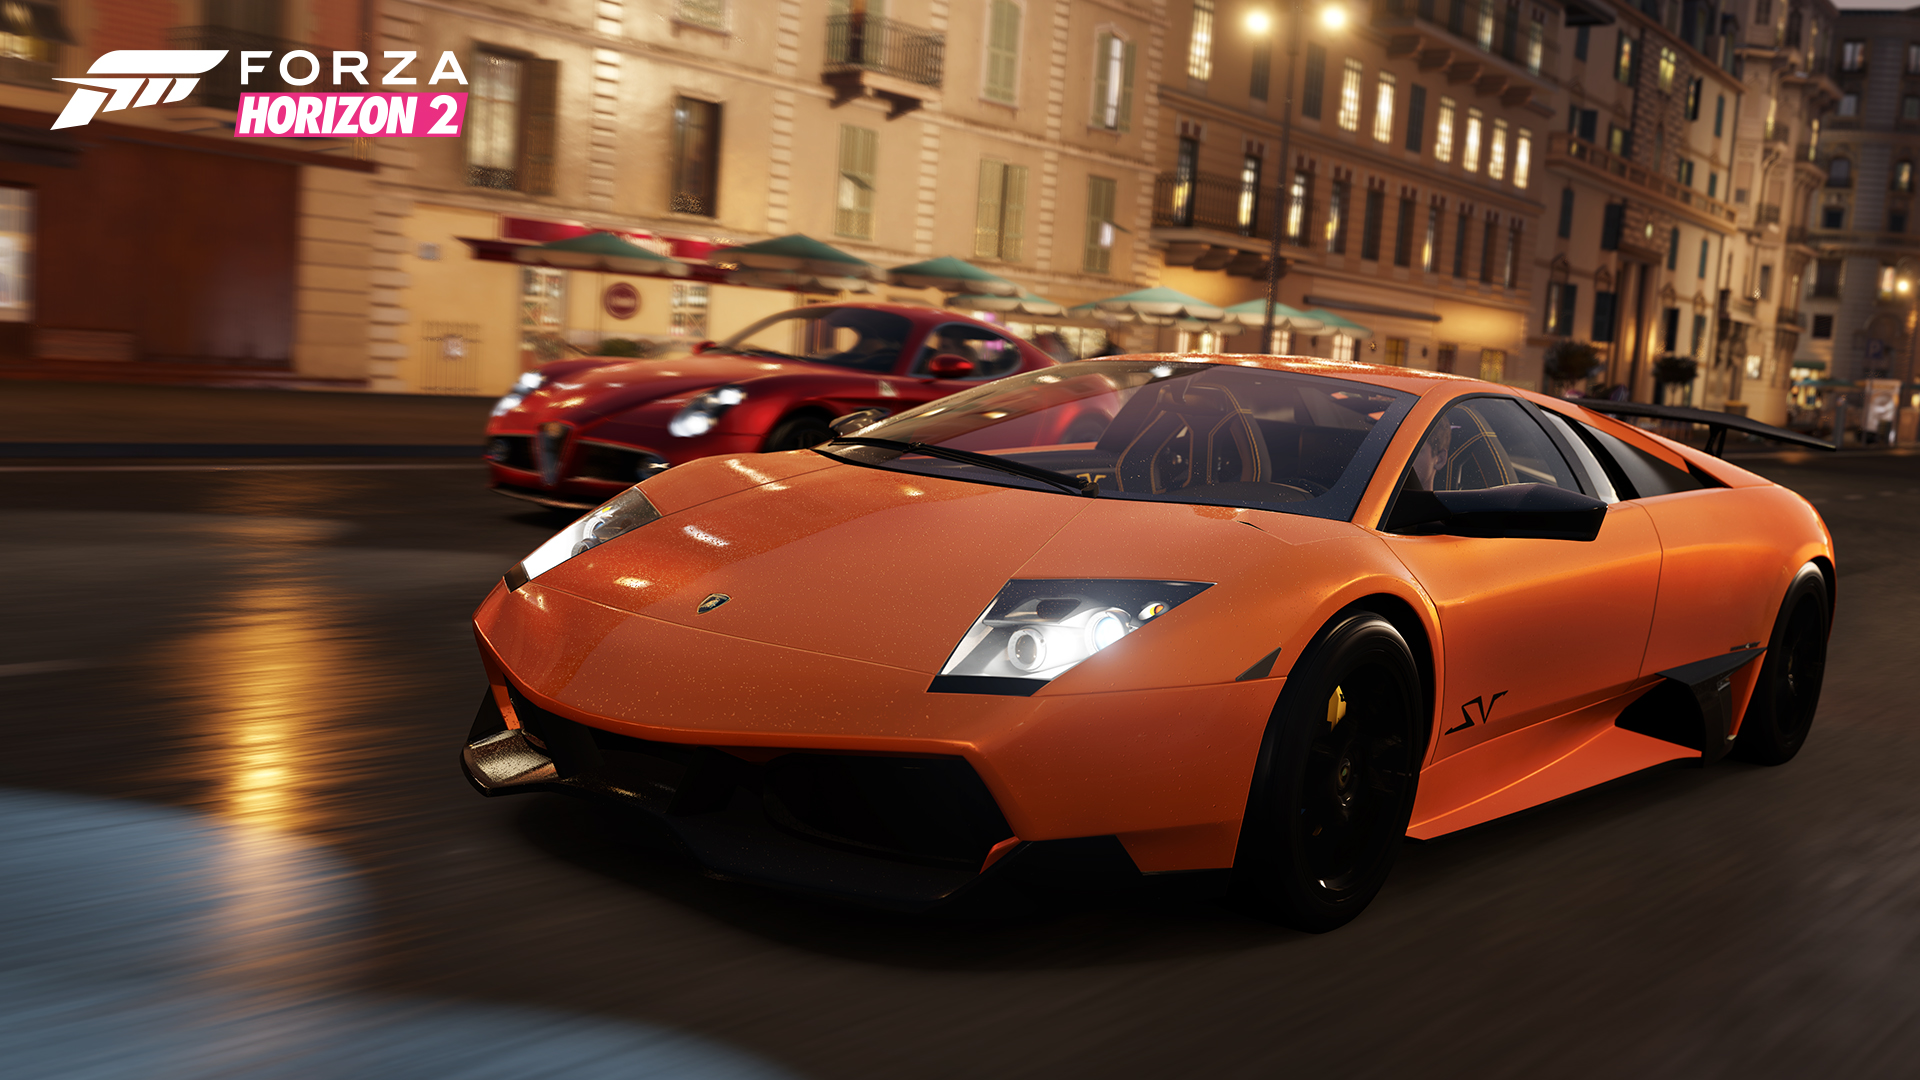 Reviews_05_WM_ForzaHorizon2